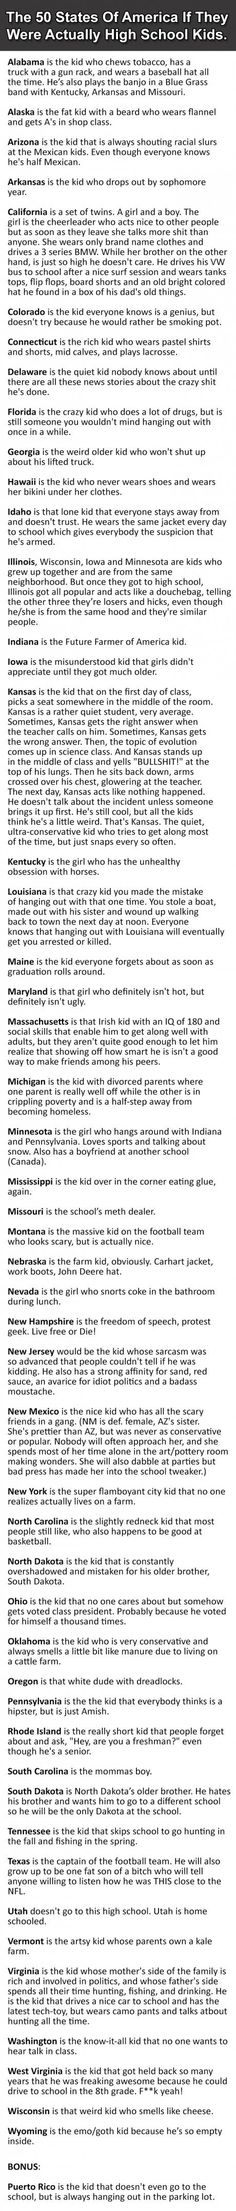 The 50 States Of America If They Were High School Kids.  Some of these made me laugh!